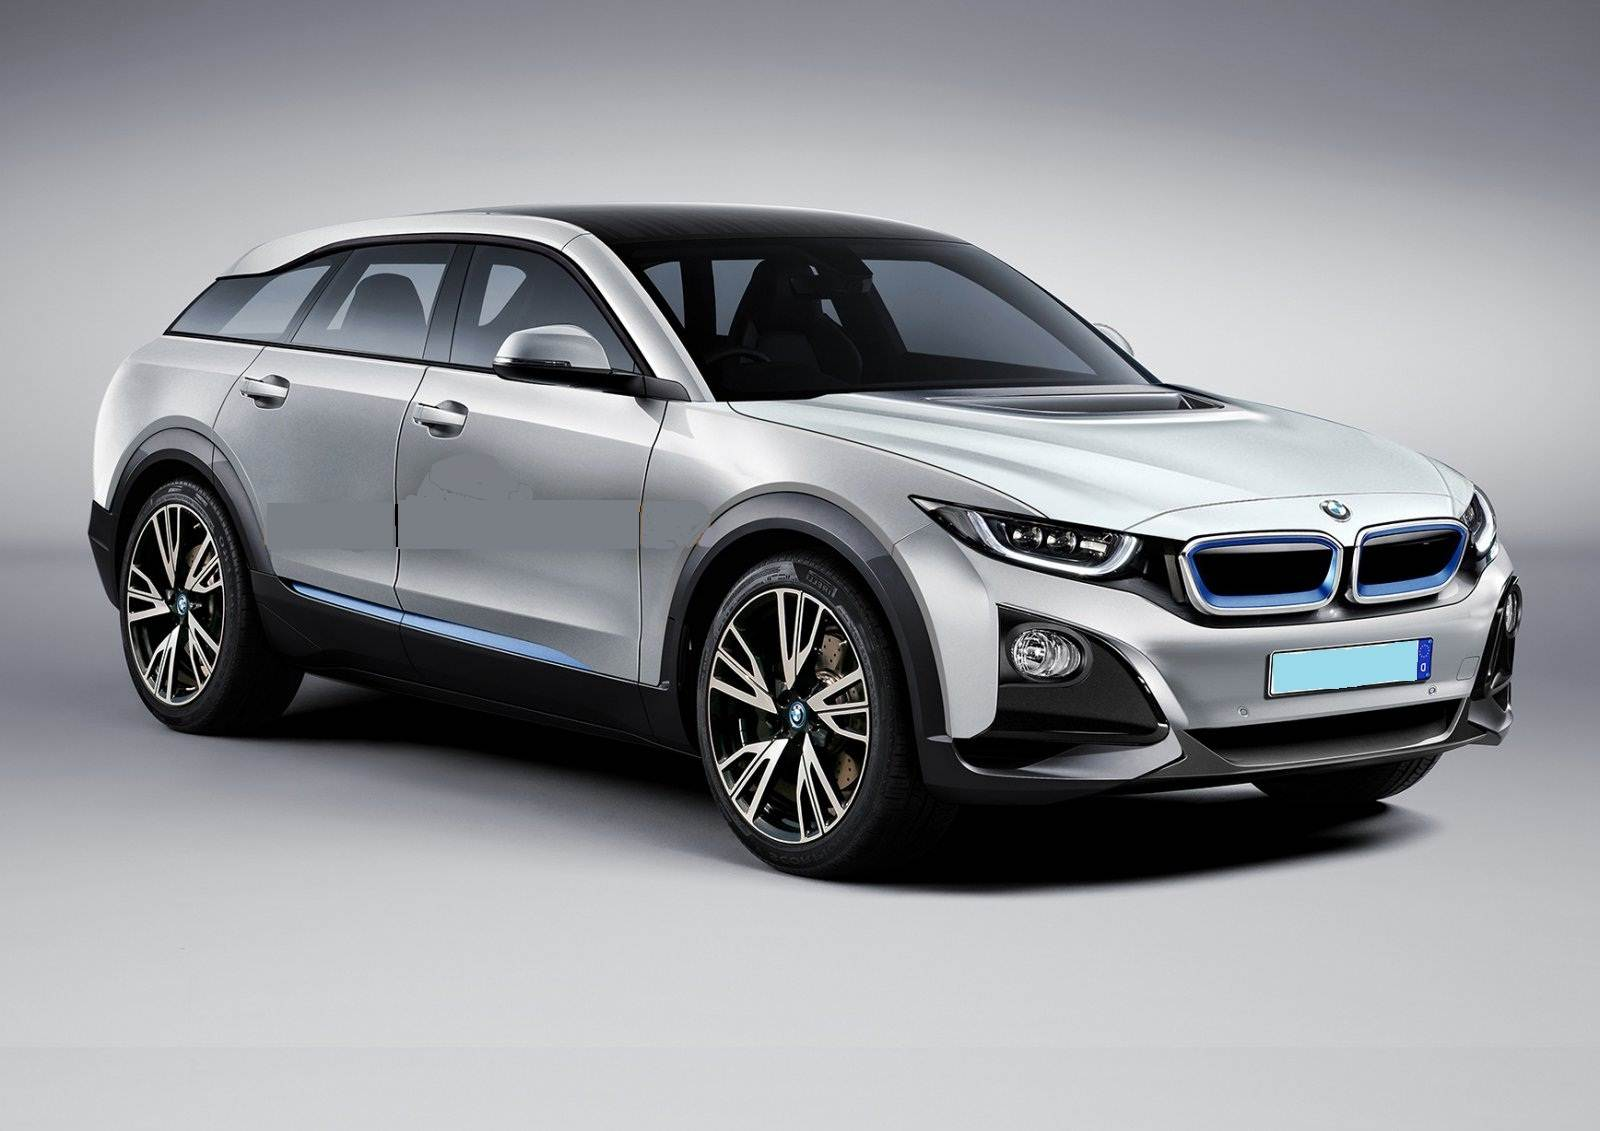 Bmw 2020 5 Series Features Trim Levels And My Dream Car Engine Diagram